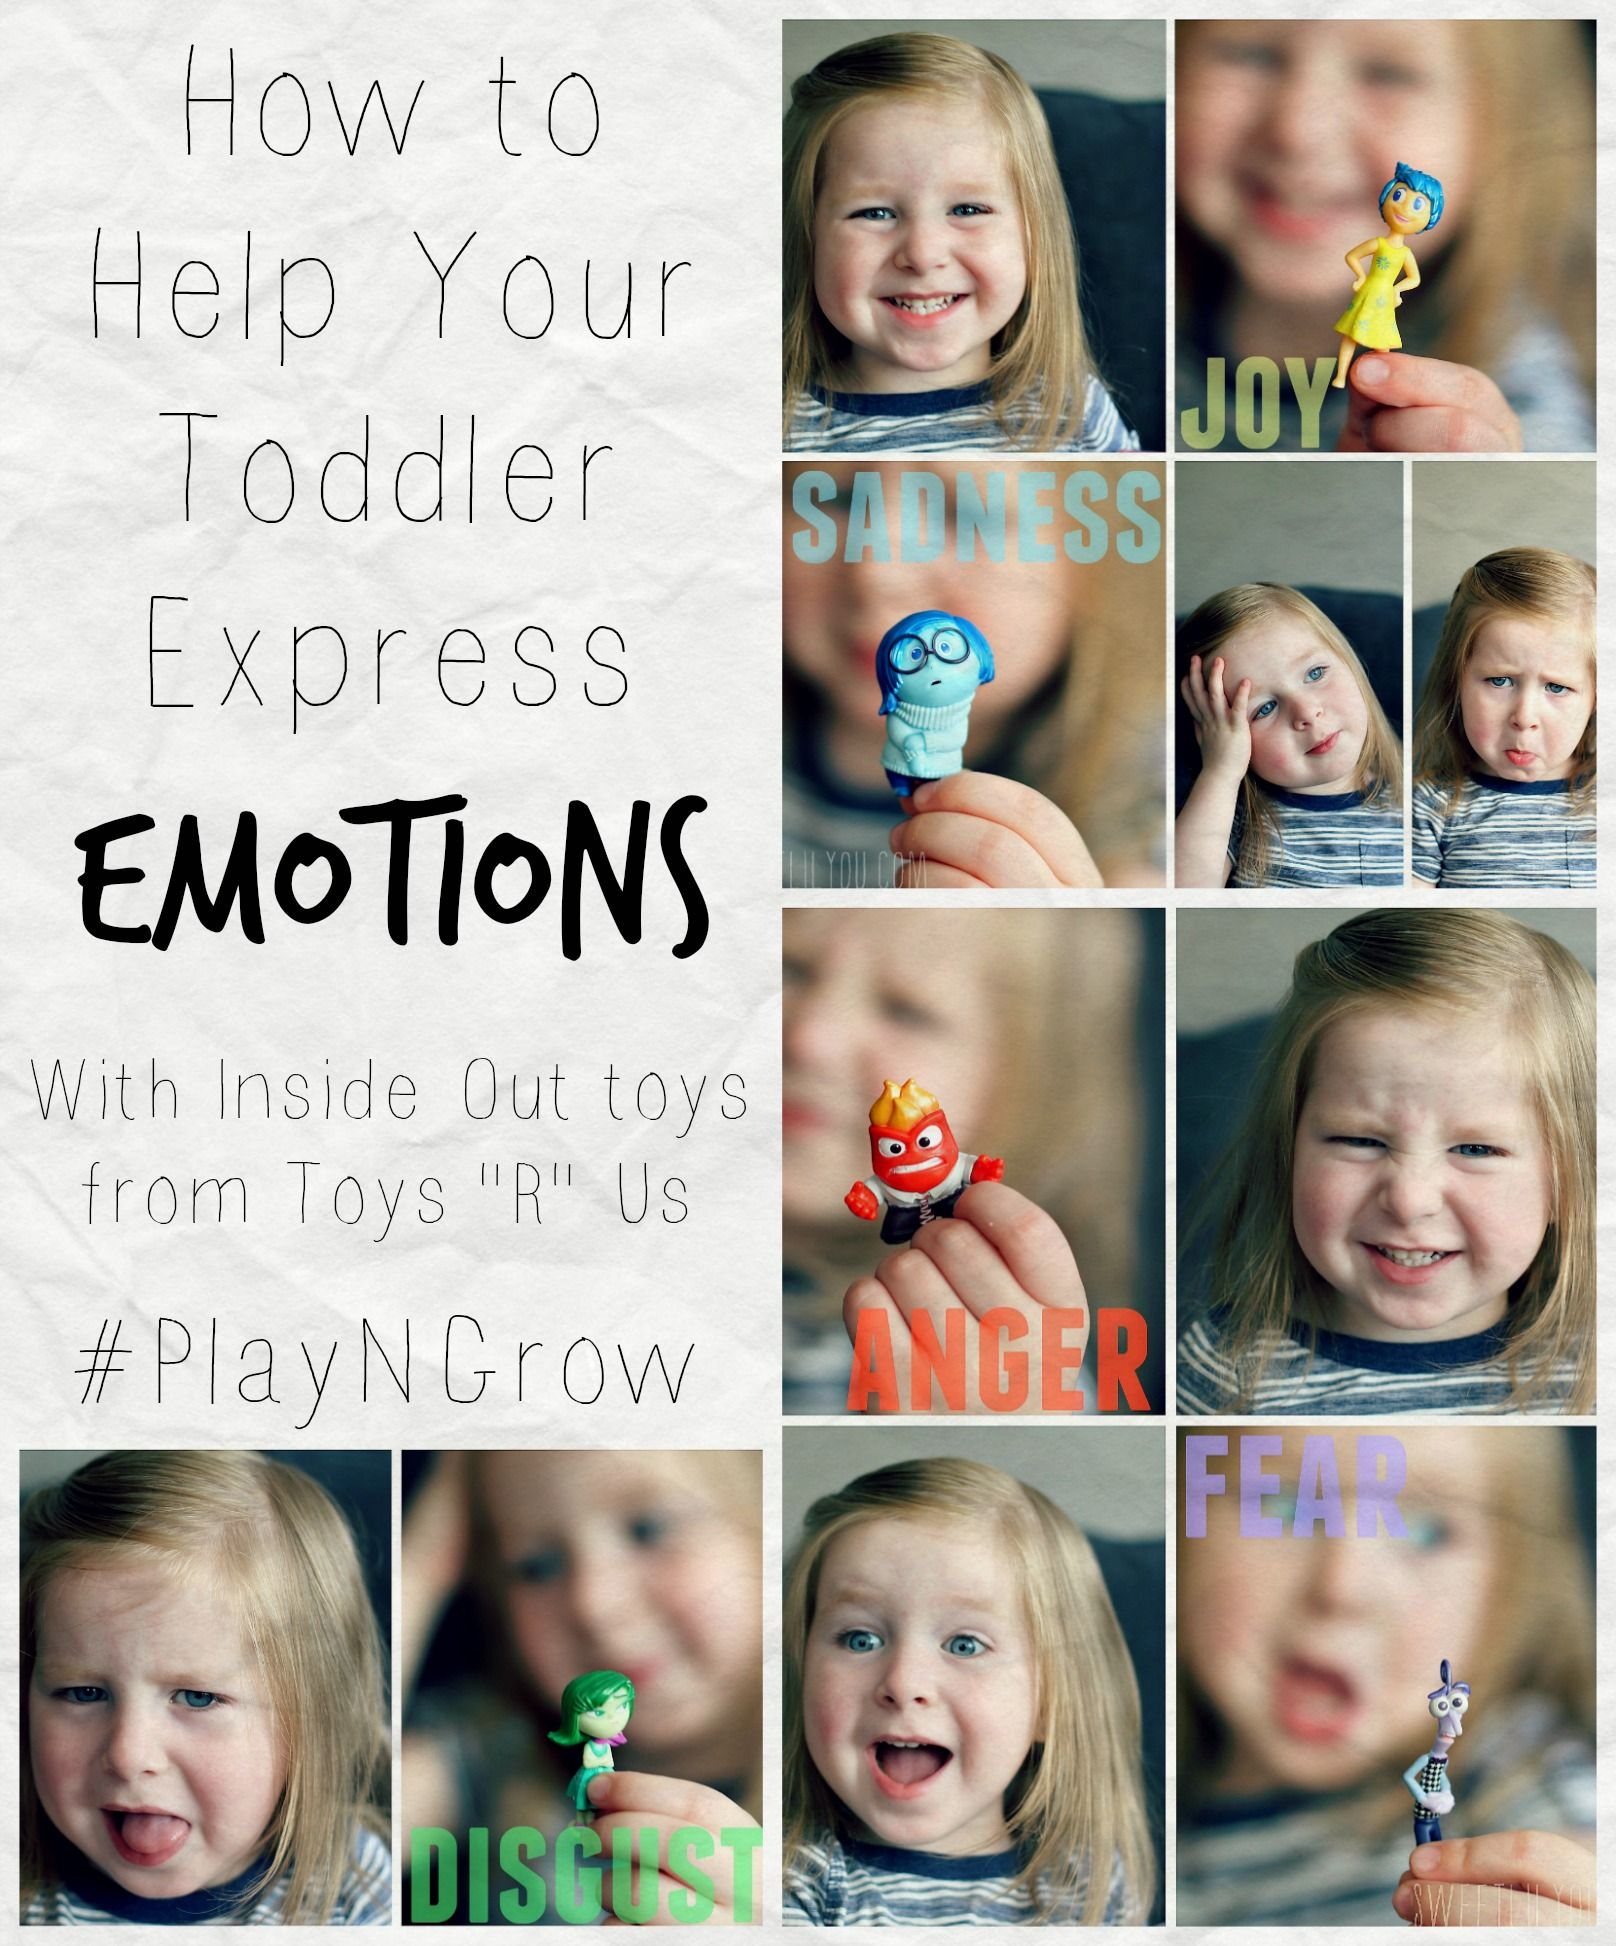 Help Your Toddler Express Emotions